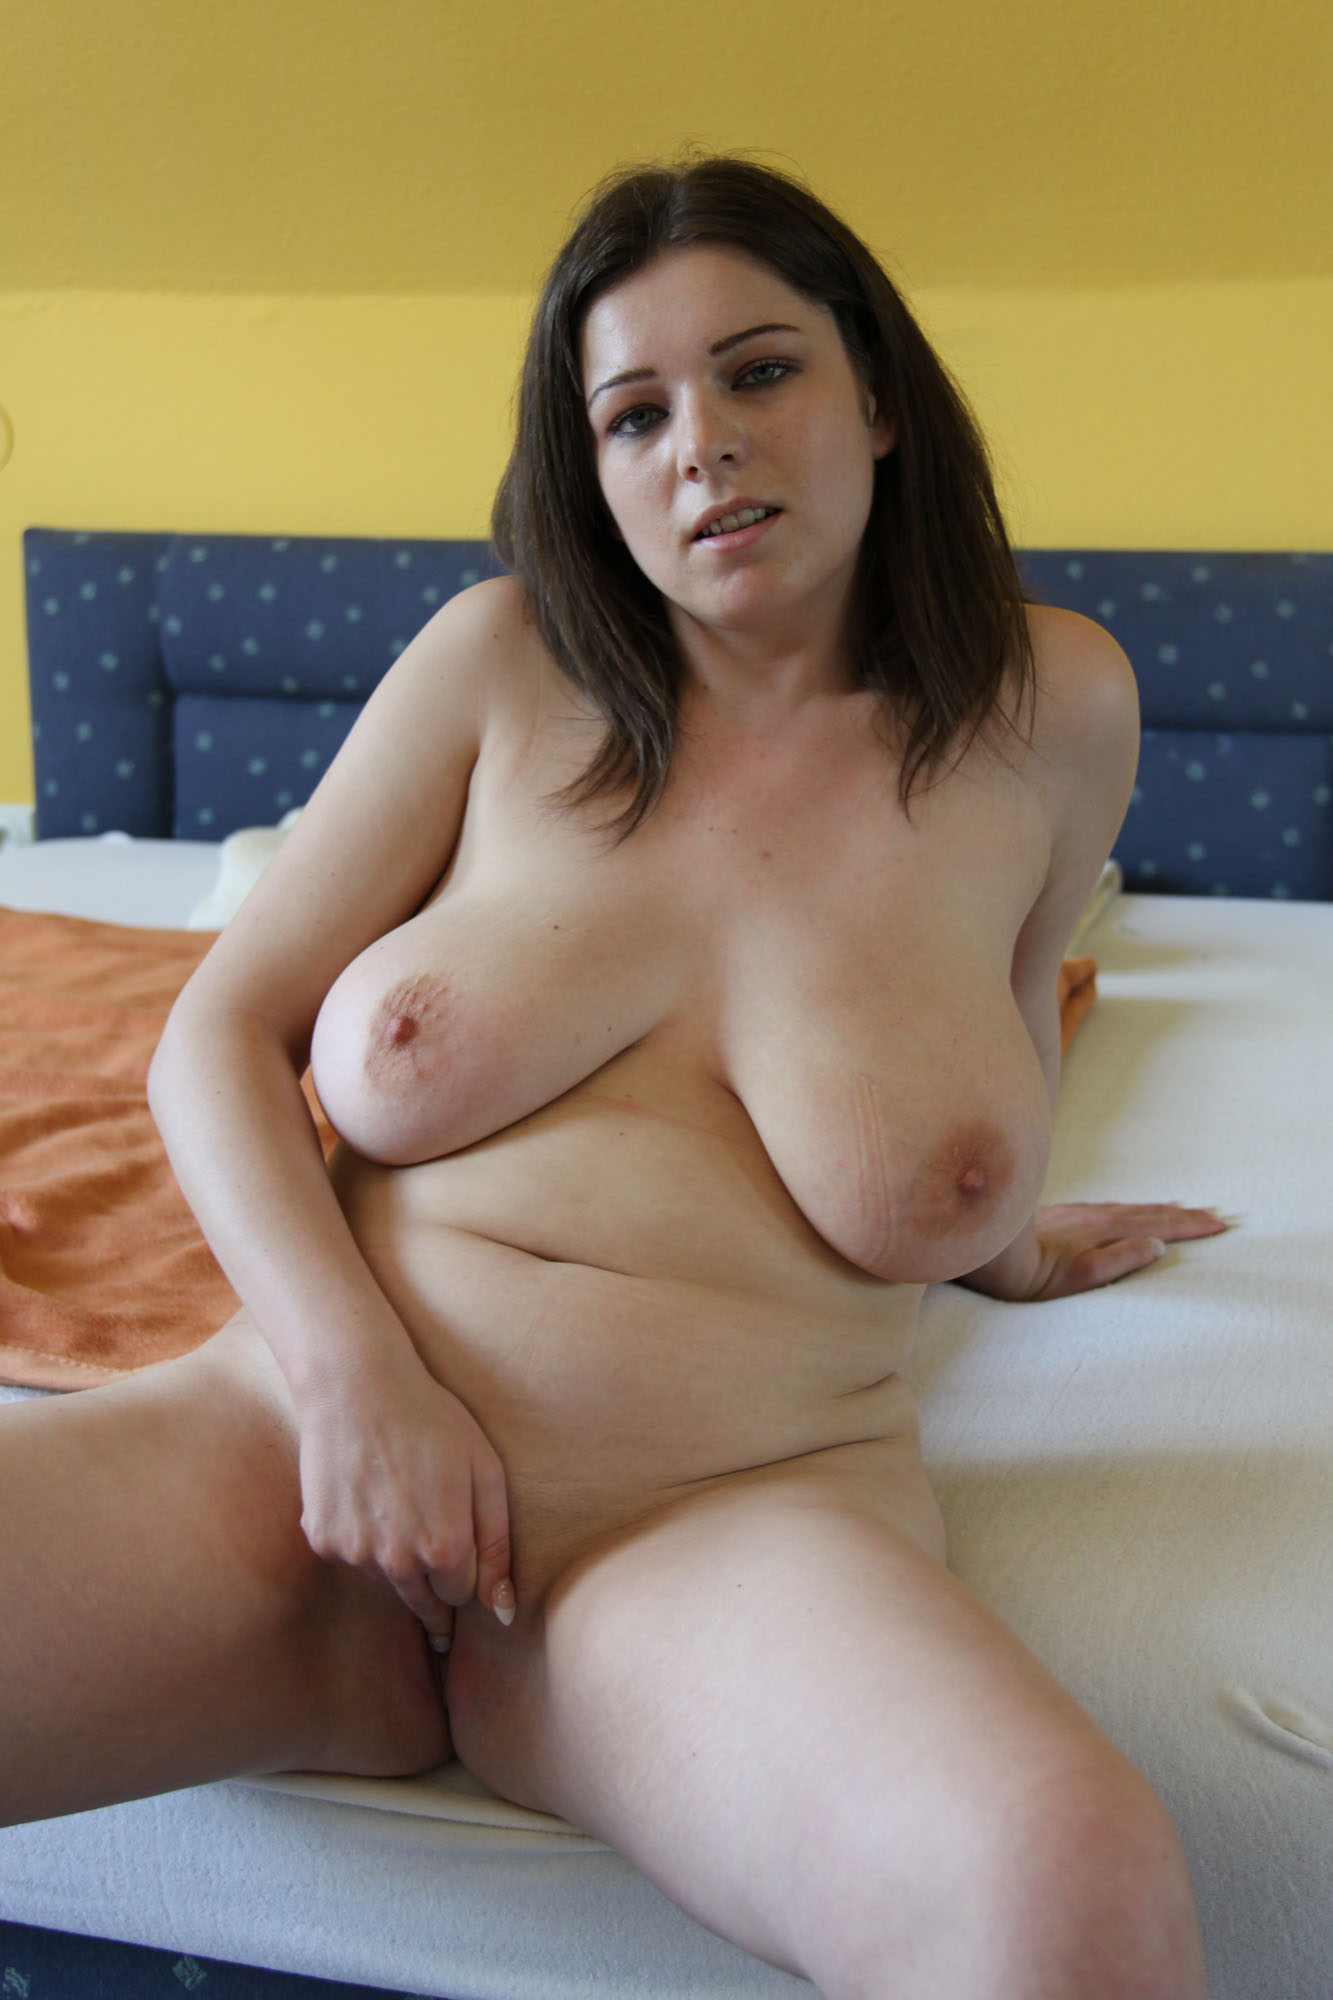 Bed nude tanning mom